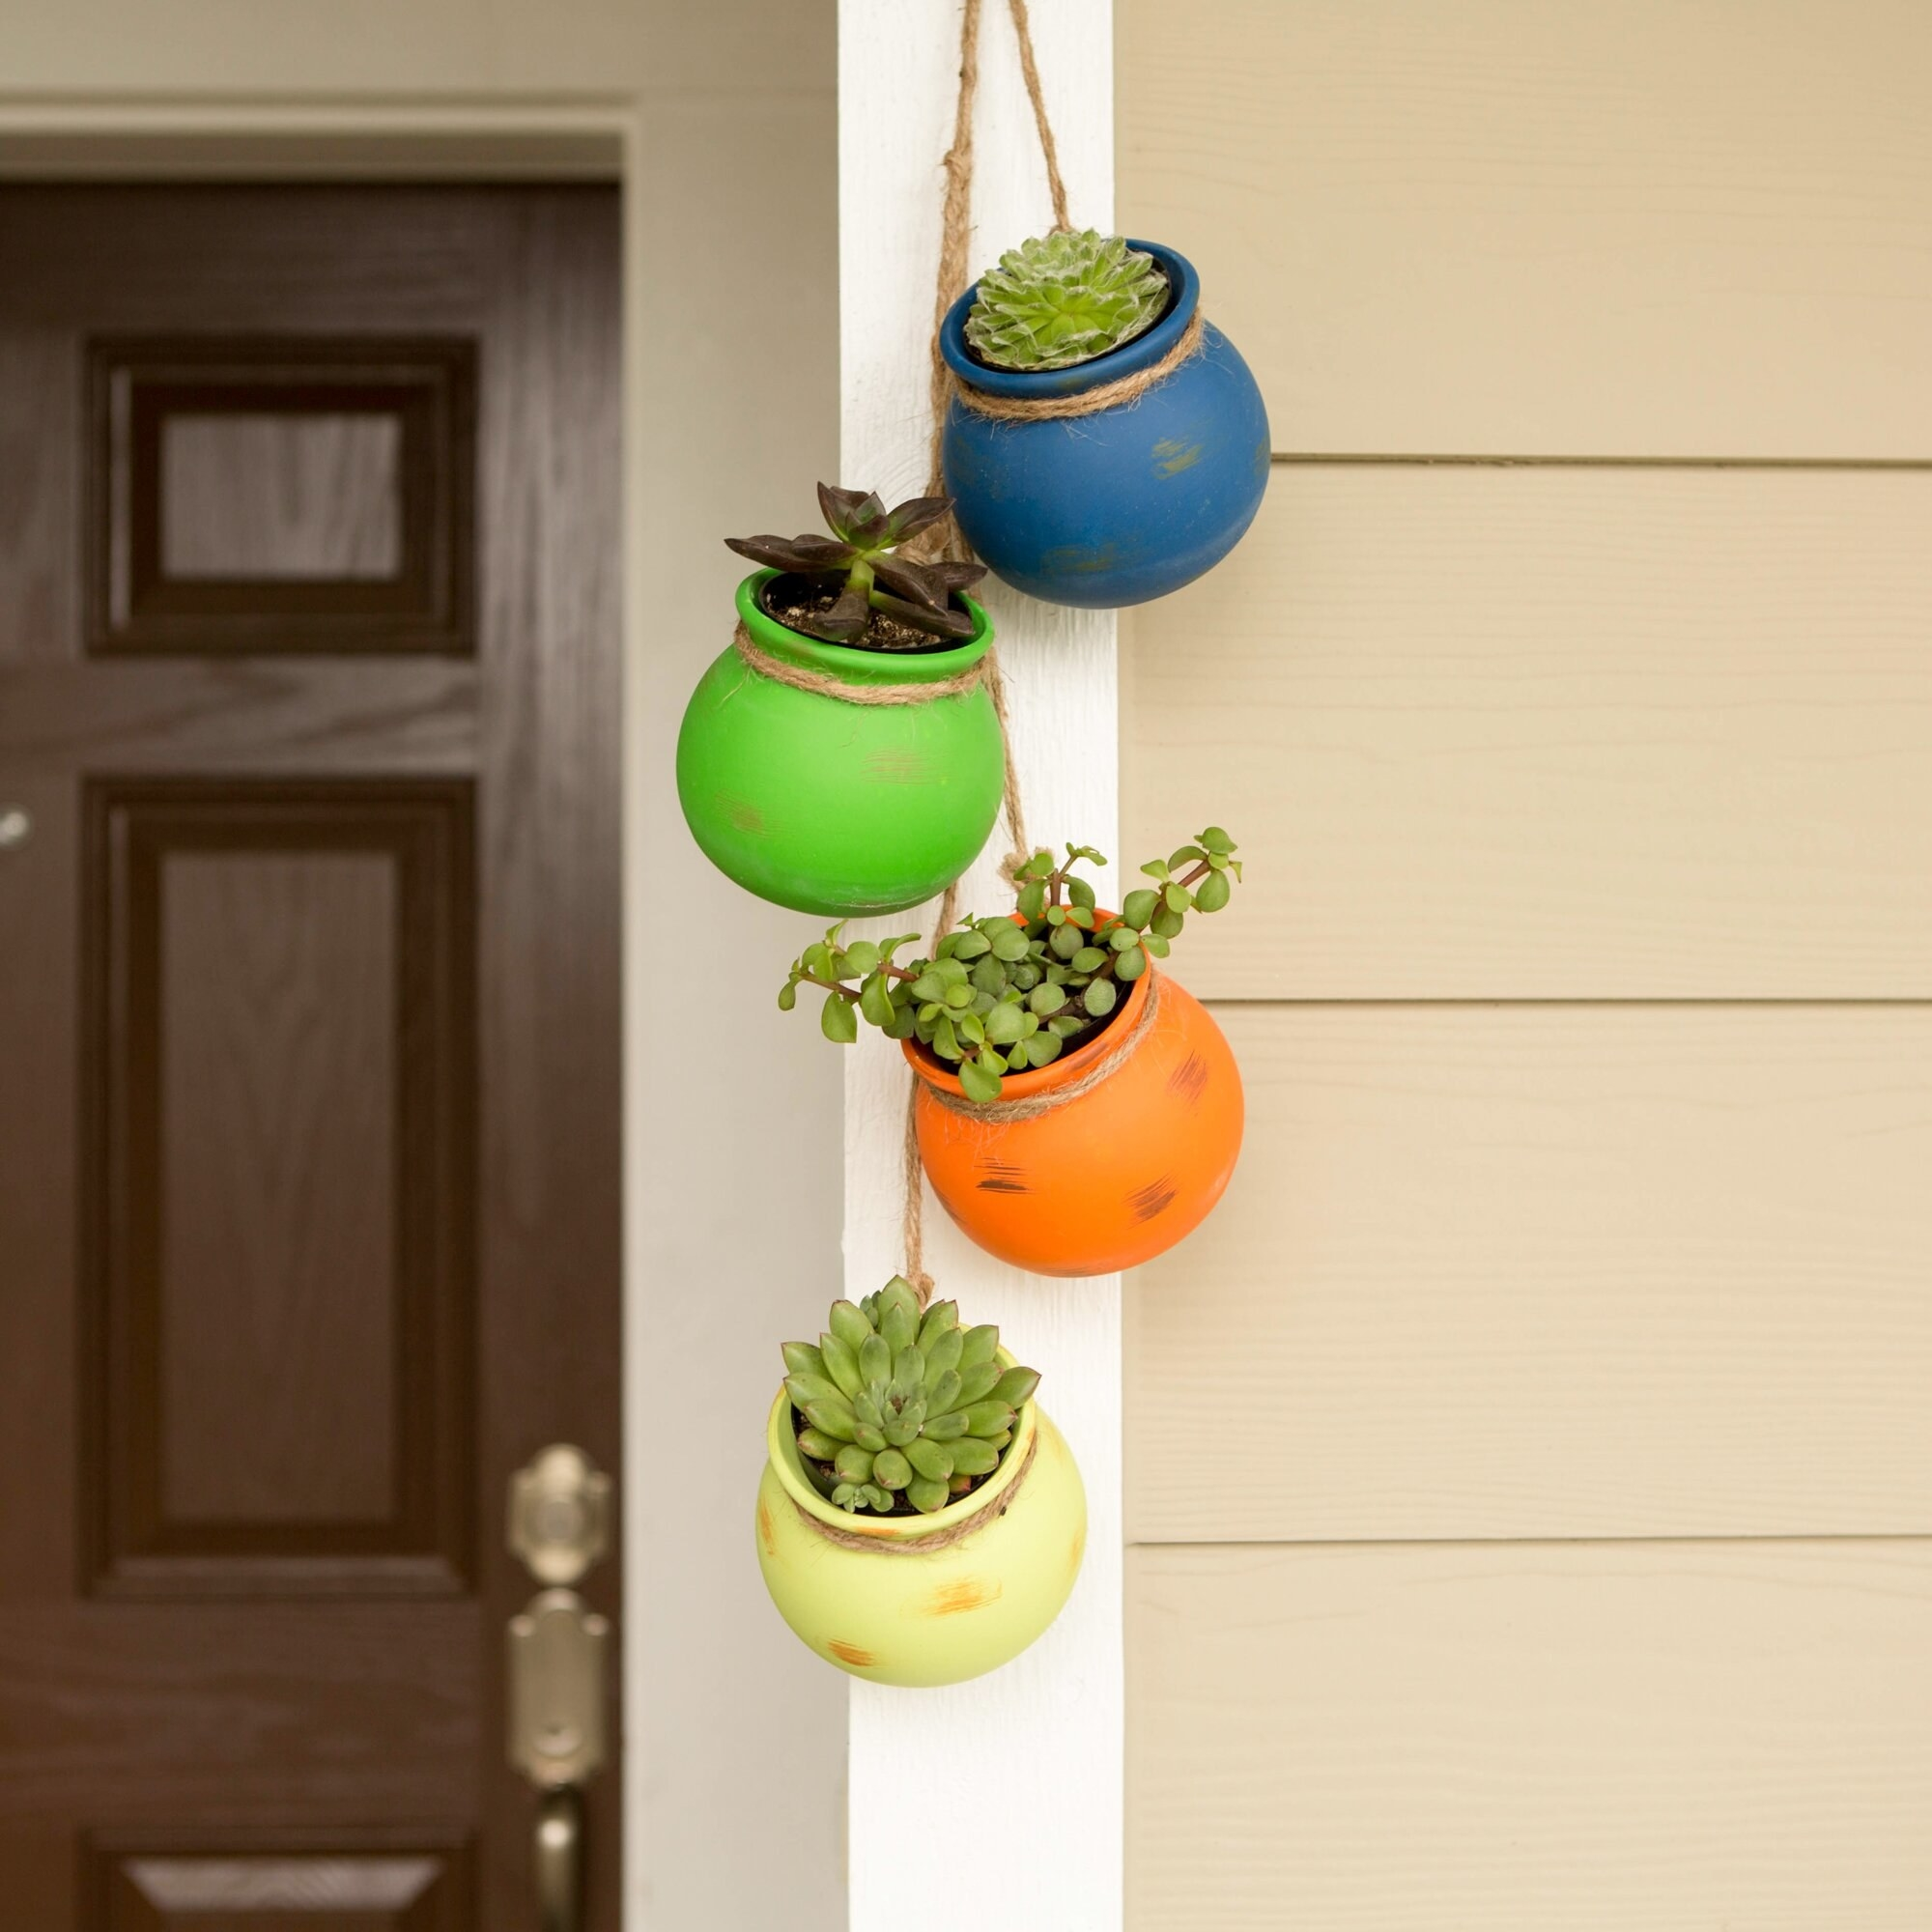 The potted plants hanging on the porch